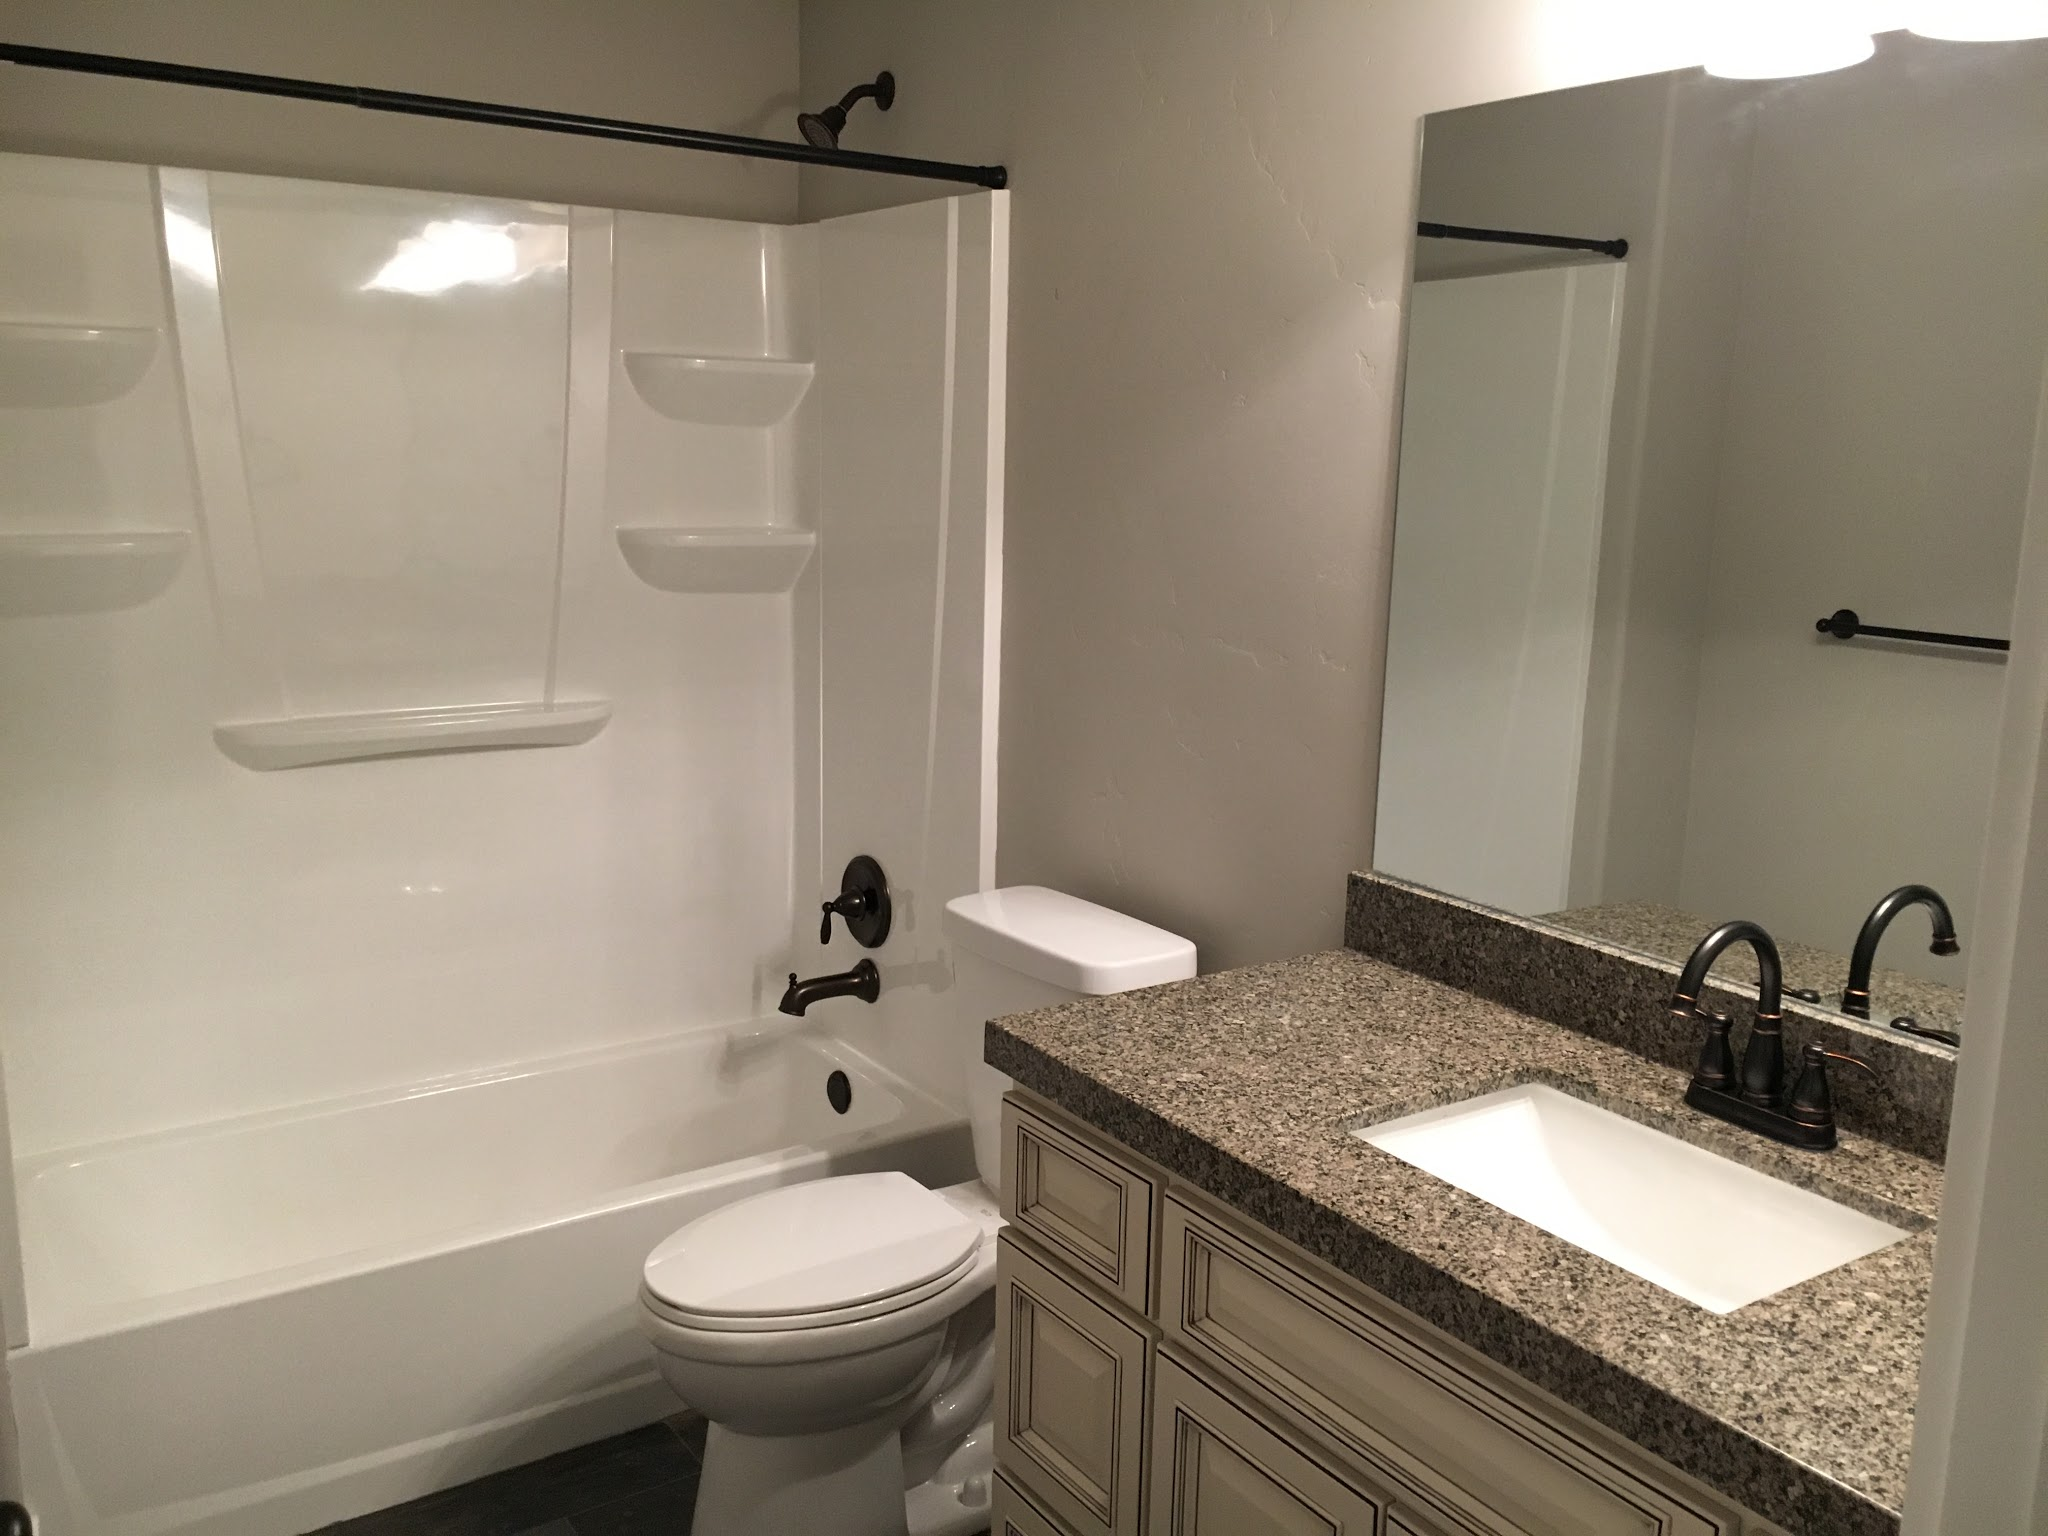 Pictures Gallery Of Bathroom Remodel Utah County. Good